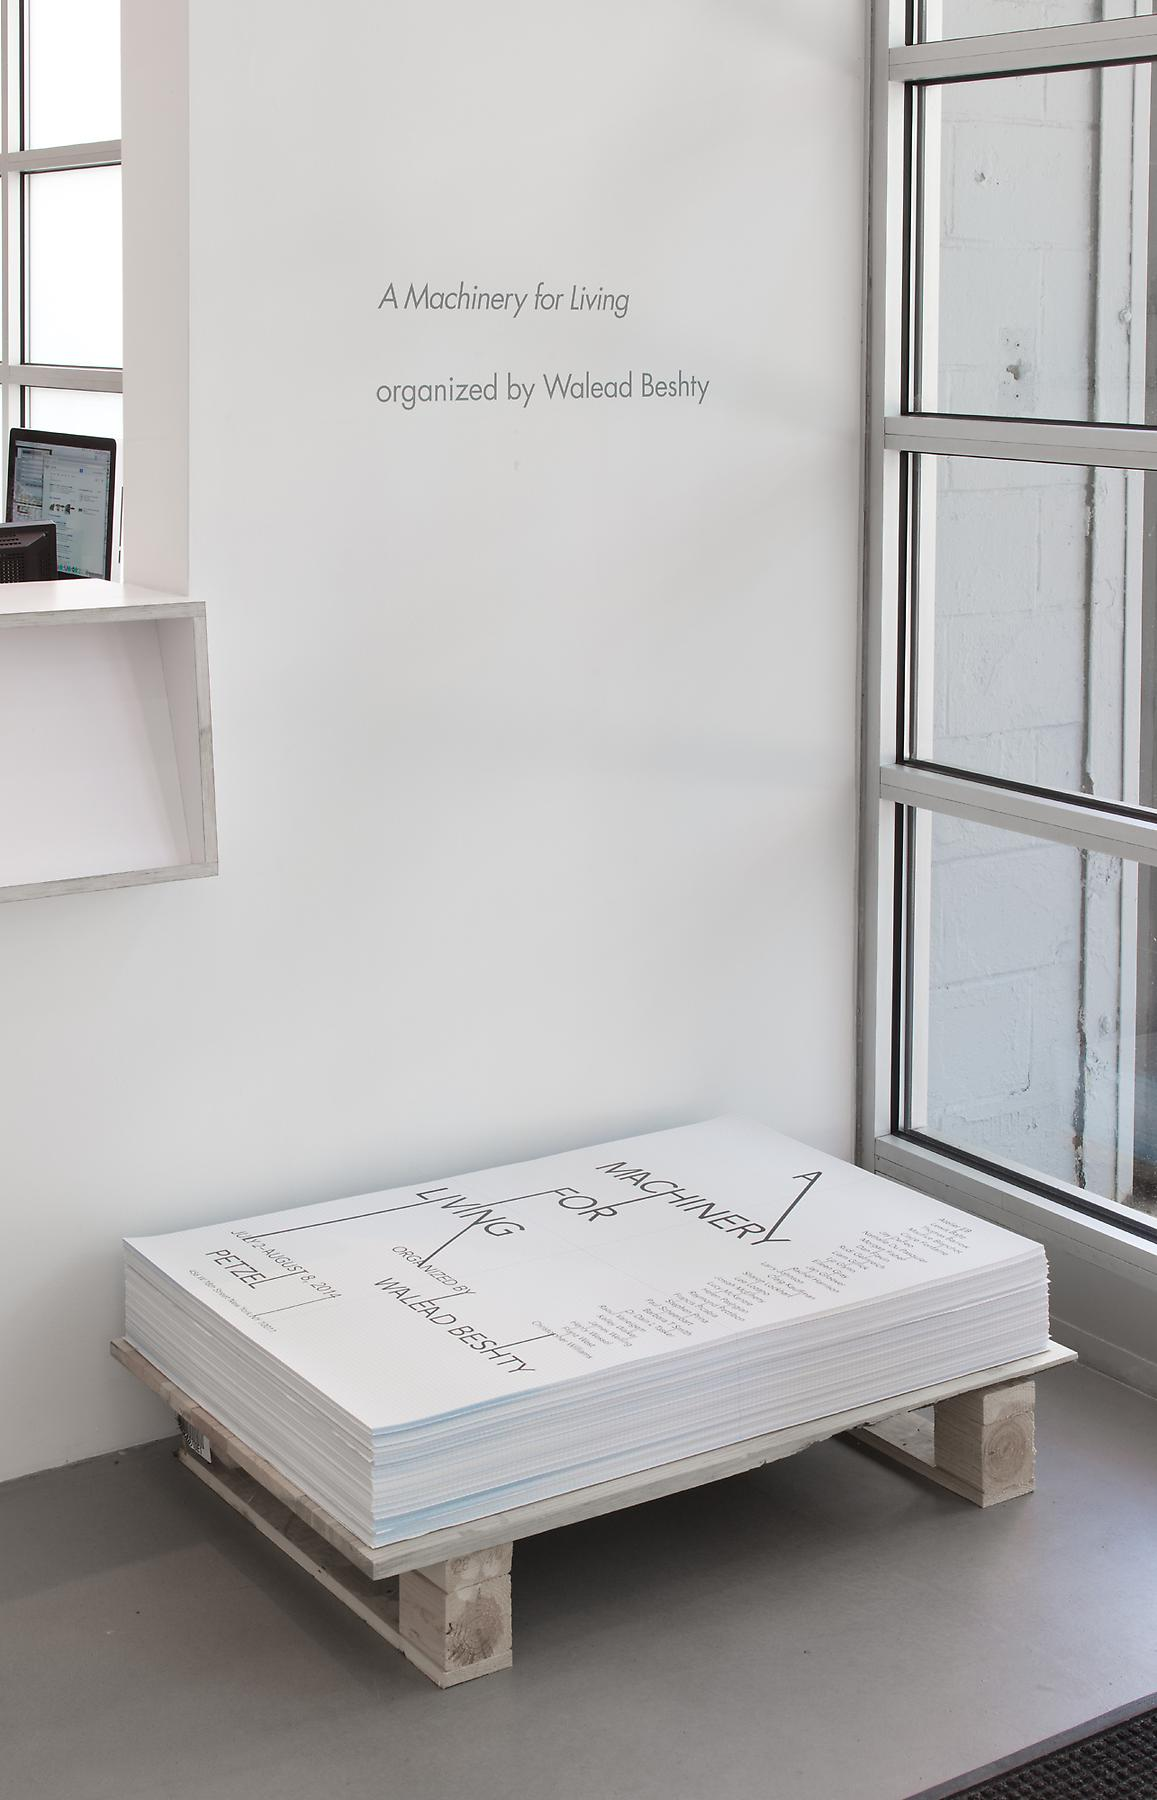 <i>A Machinery for Living</i> Installation view 1 2014